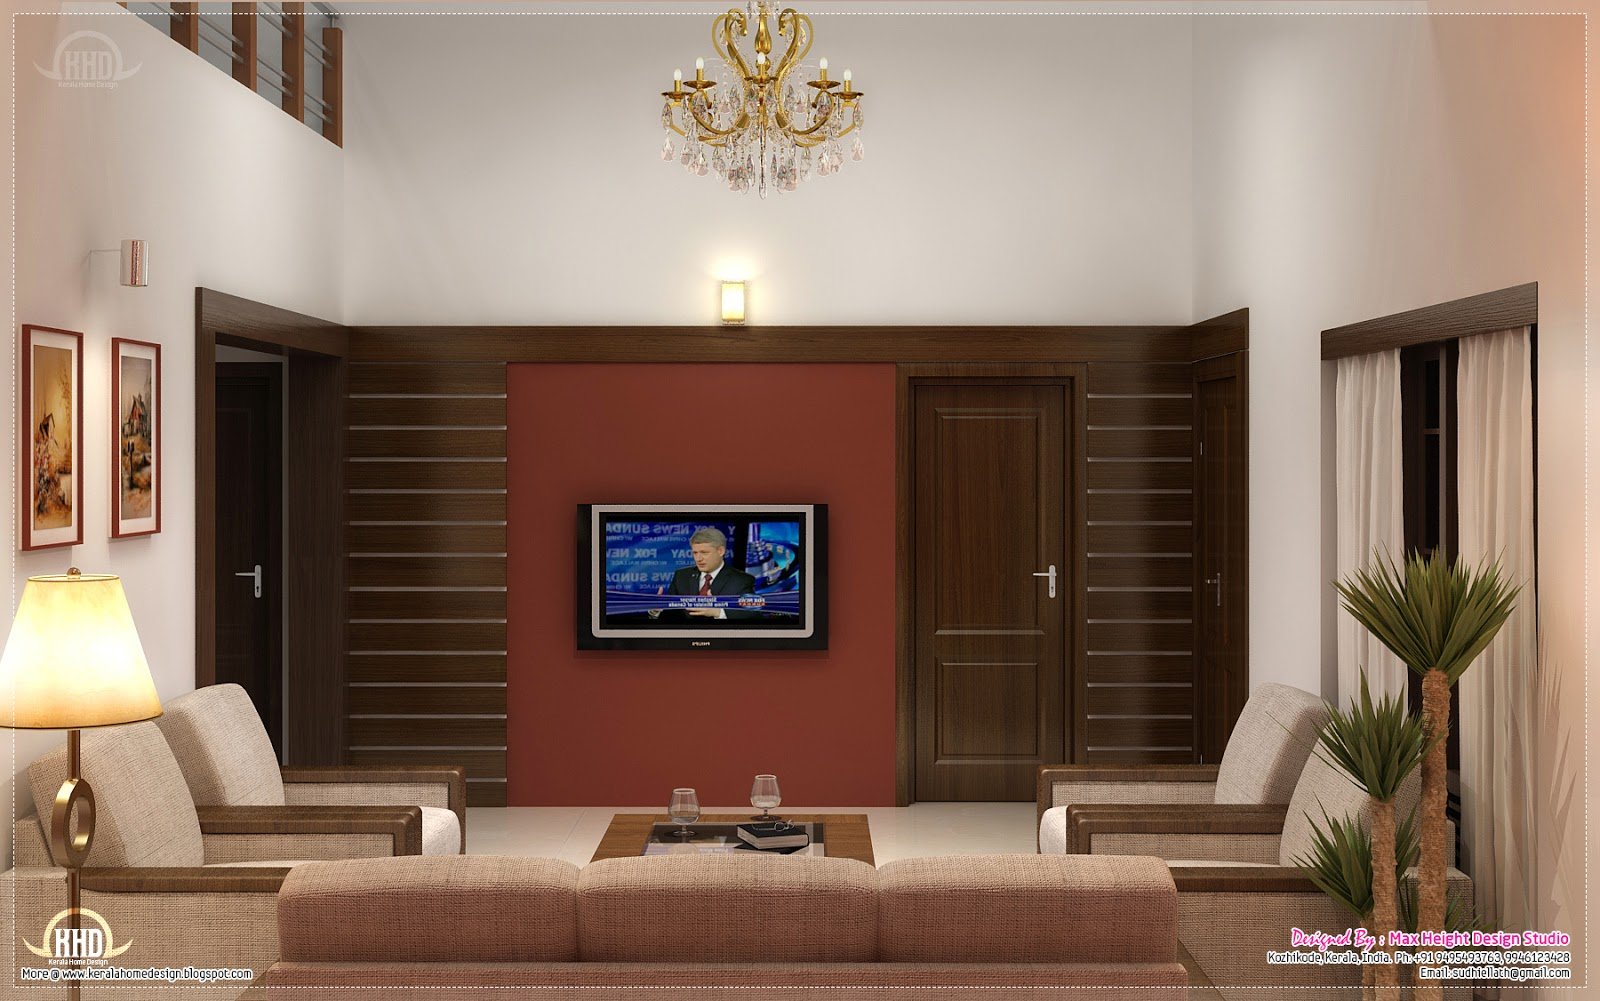 Home interior design ideas kerala home design and floor for House interior design living room